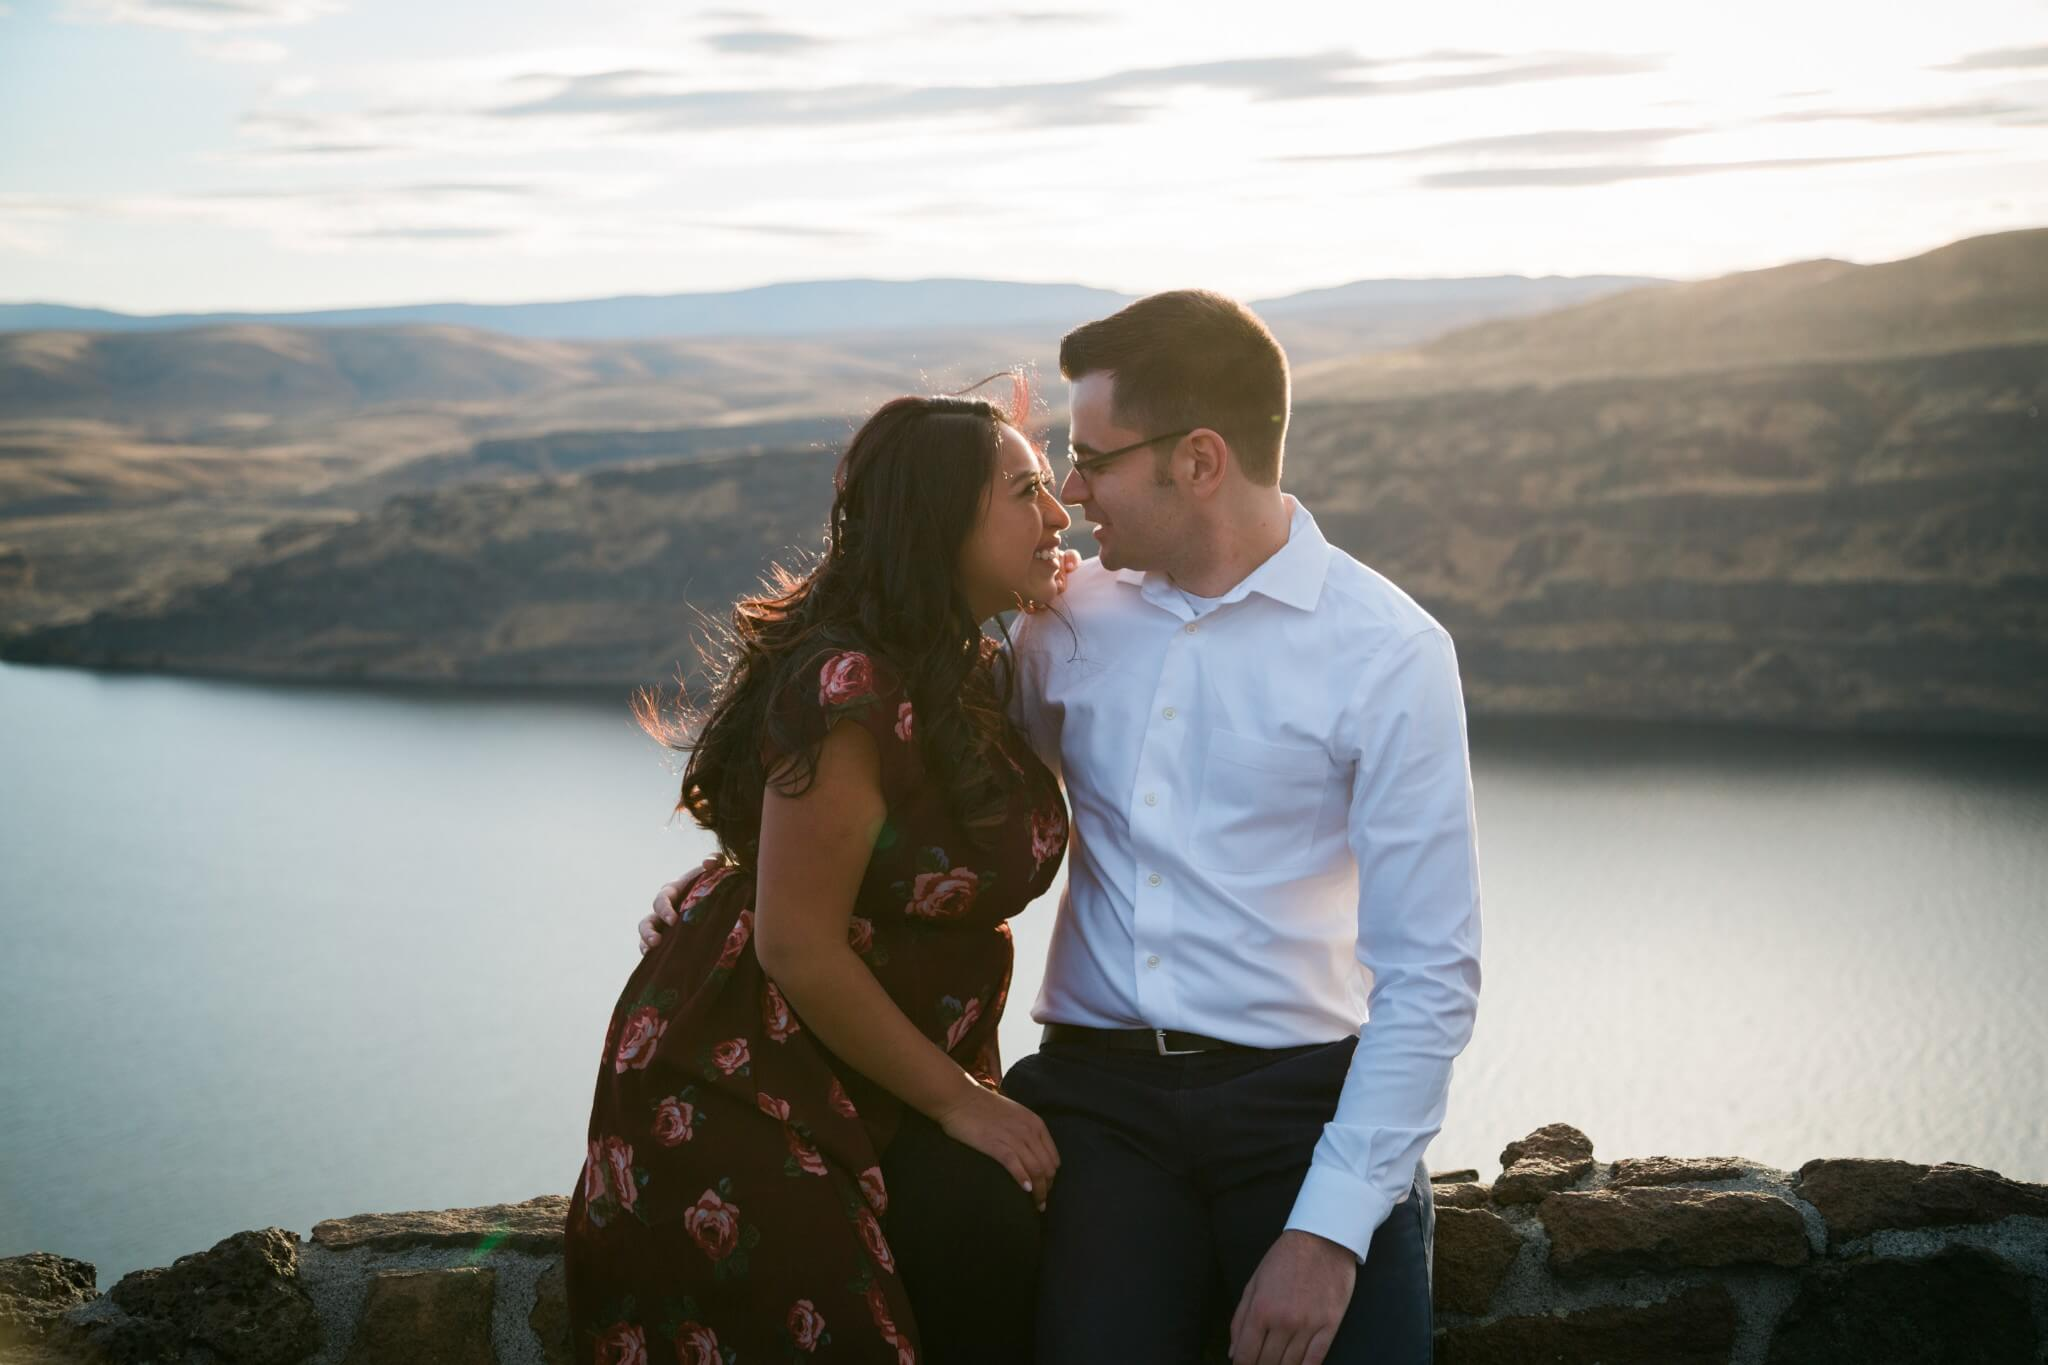 Lesly & Michael Vantage Engagement by Bill Weisgerber Spokane Photographer (25 of 71).jpg